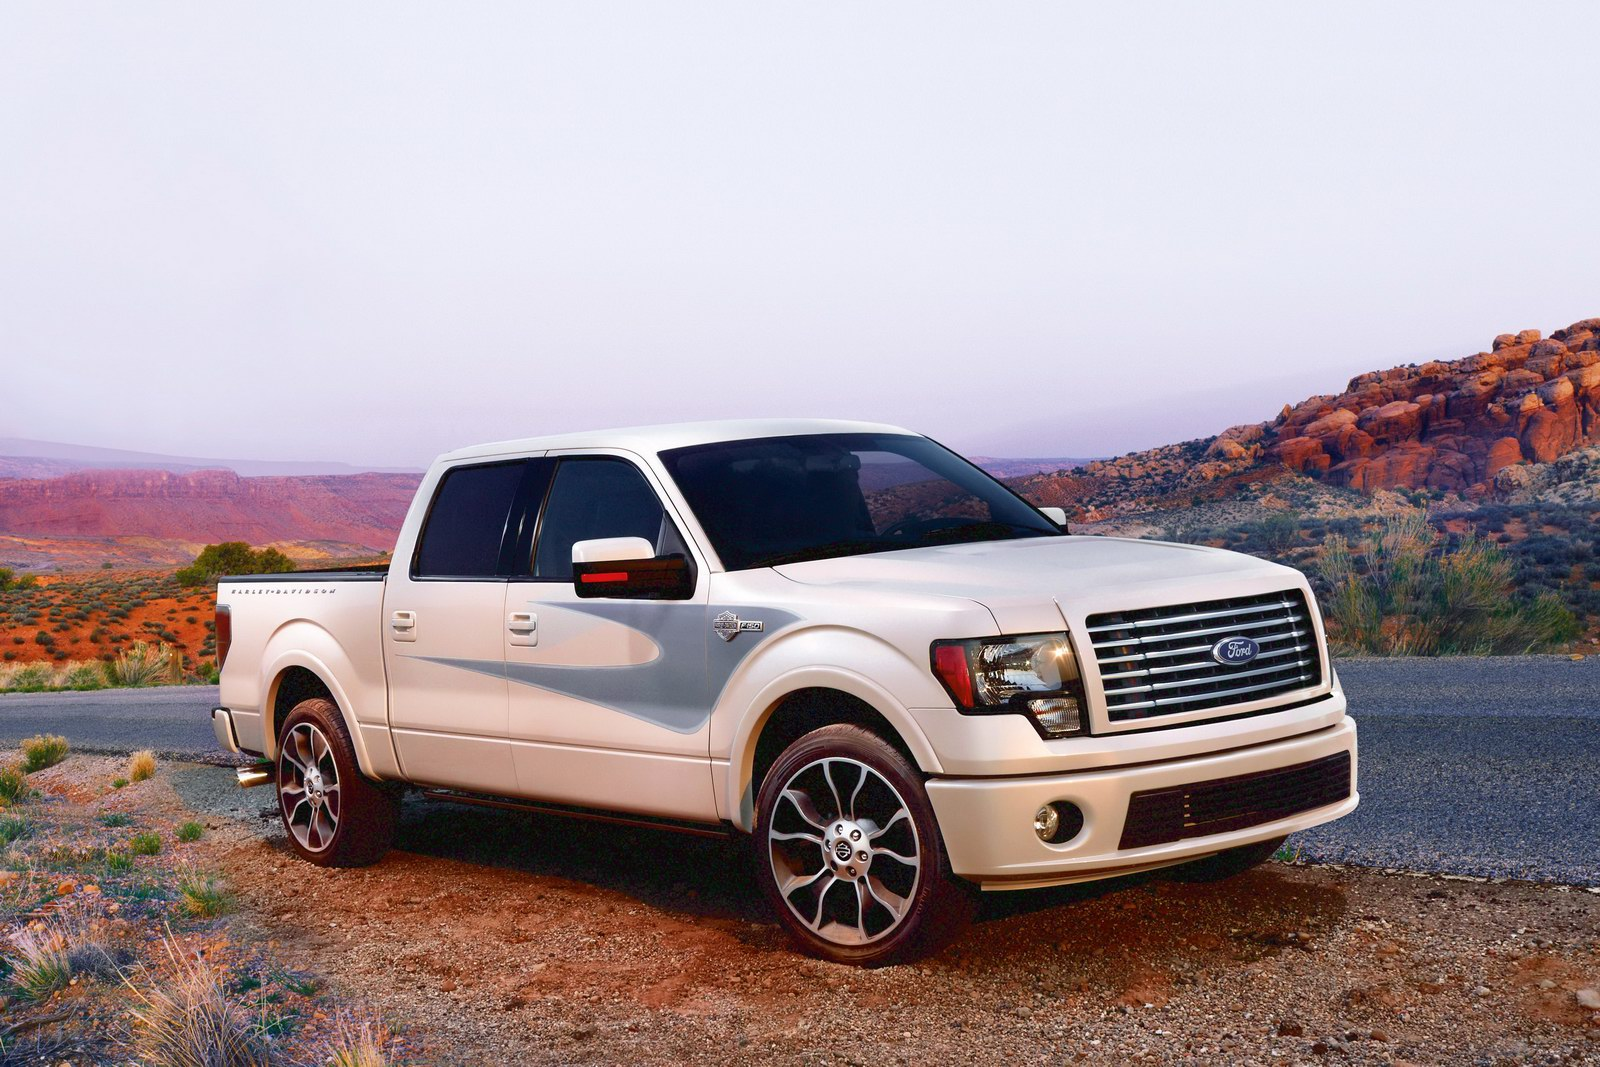 Ford f-150 1999 photo - 4